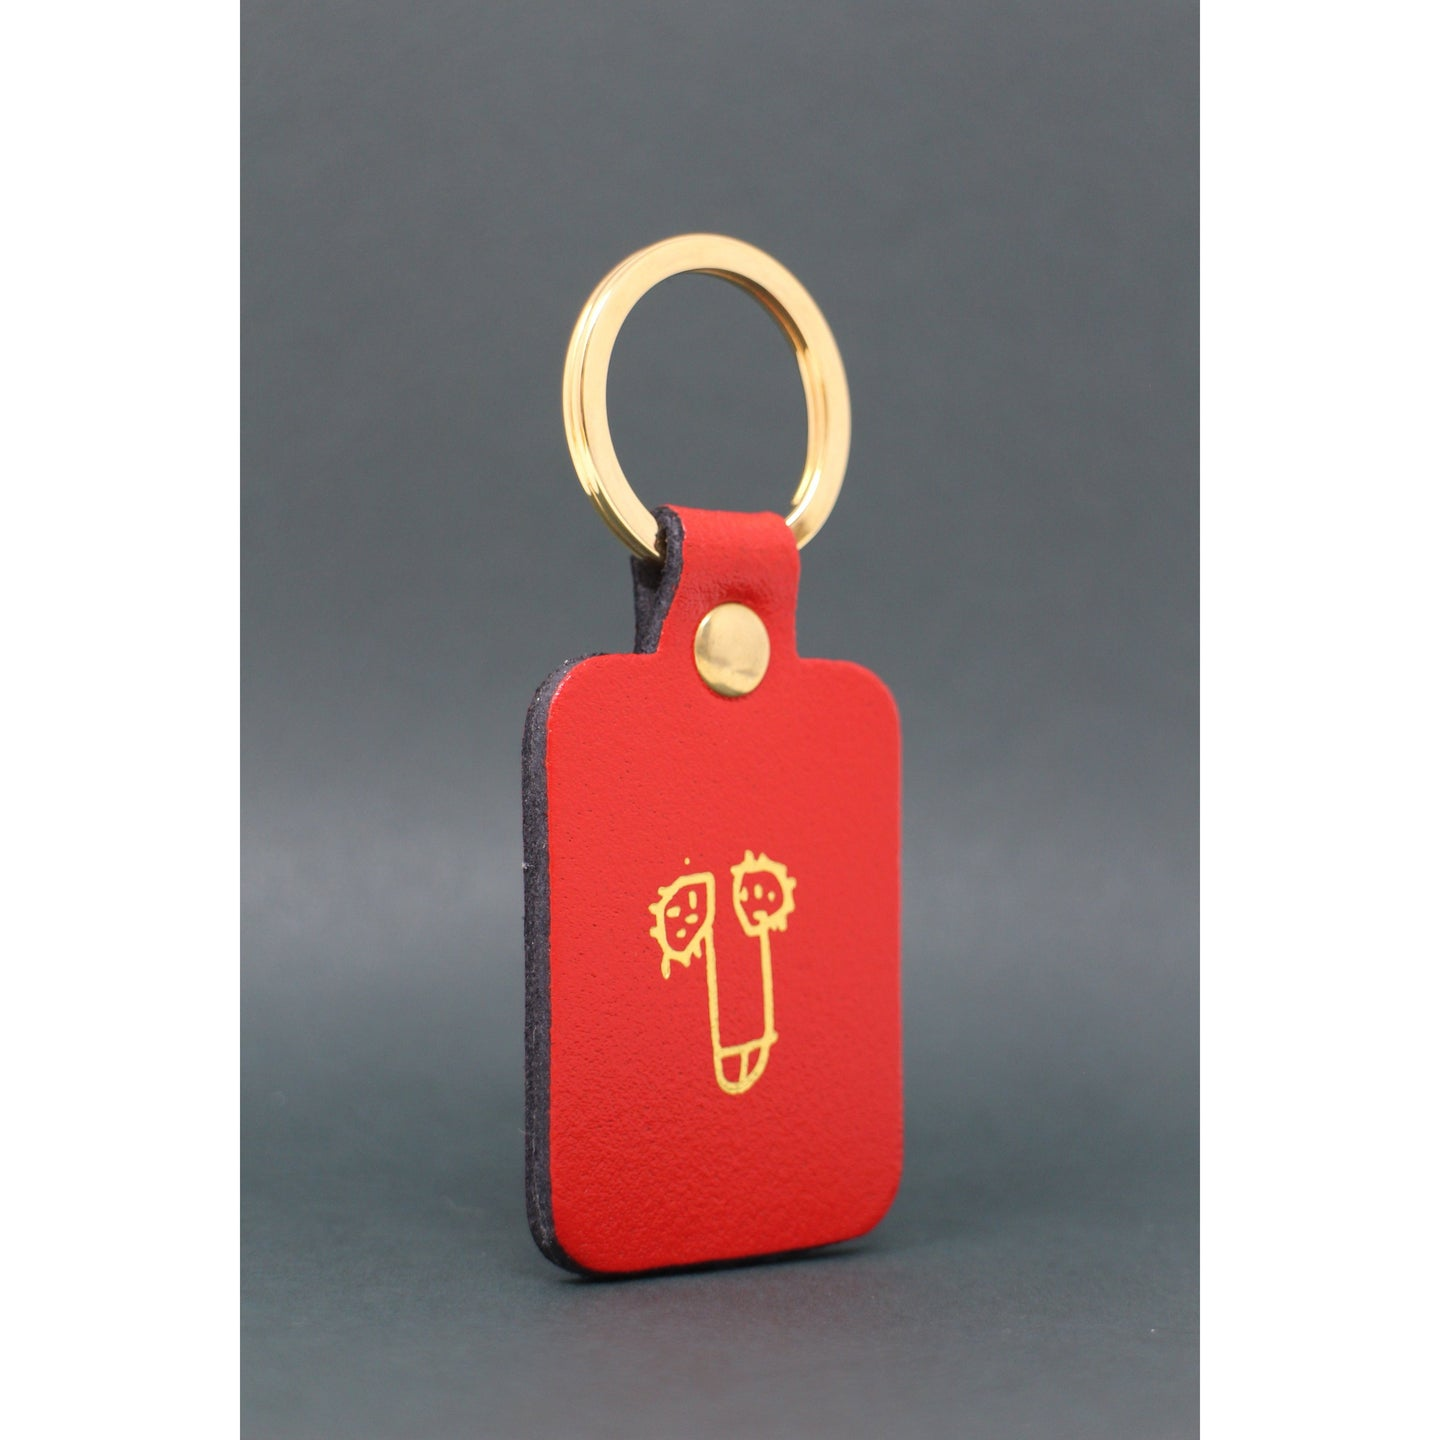 ARK Colour Design Willy Key Fob Old Fire Station